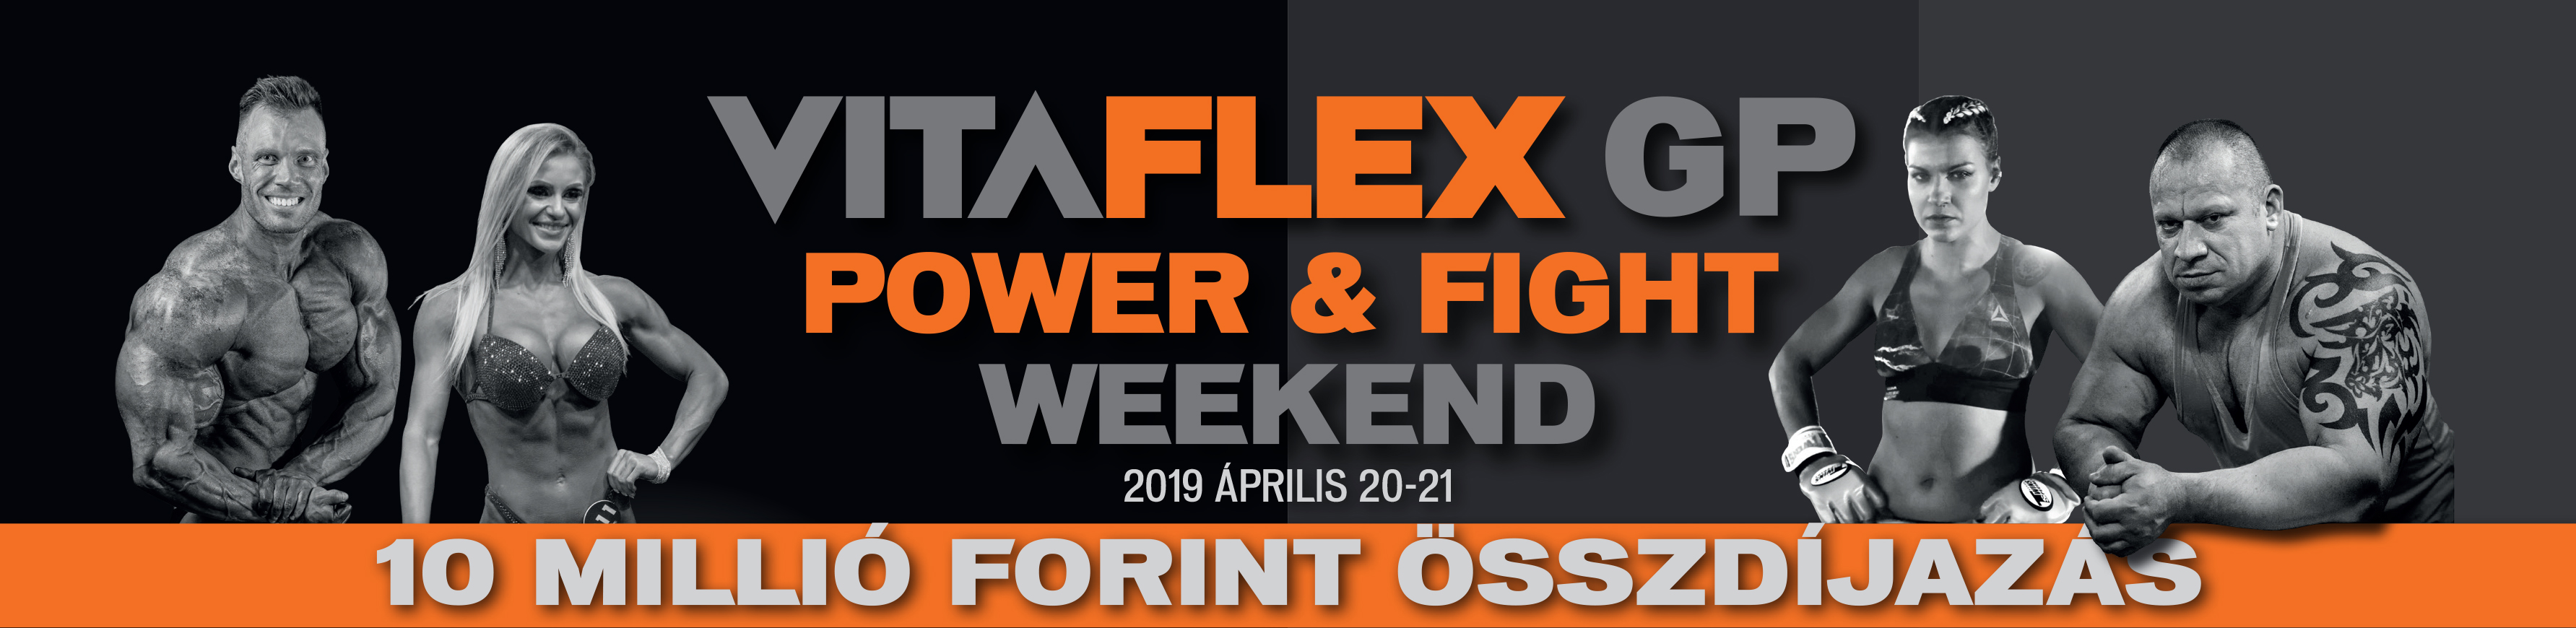 VITAFLEX GP POWER & FIGHT WEEKEND